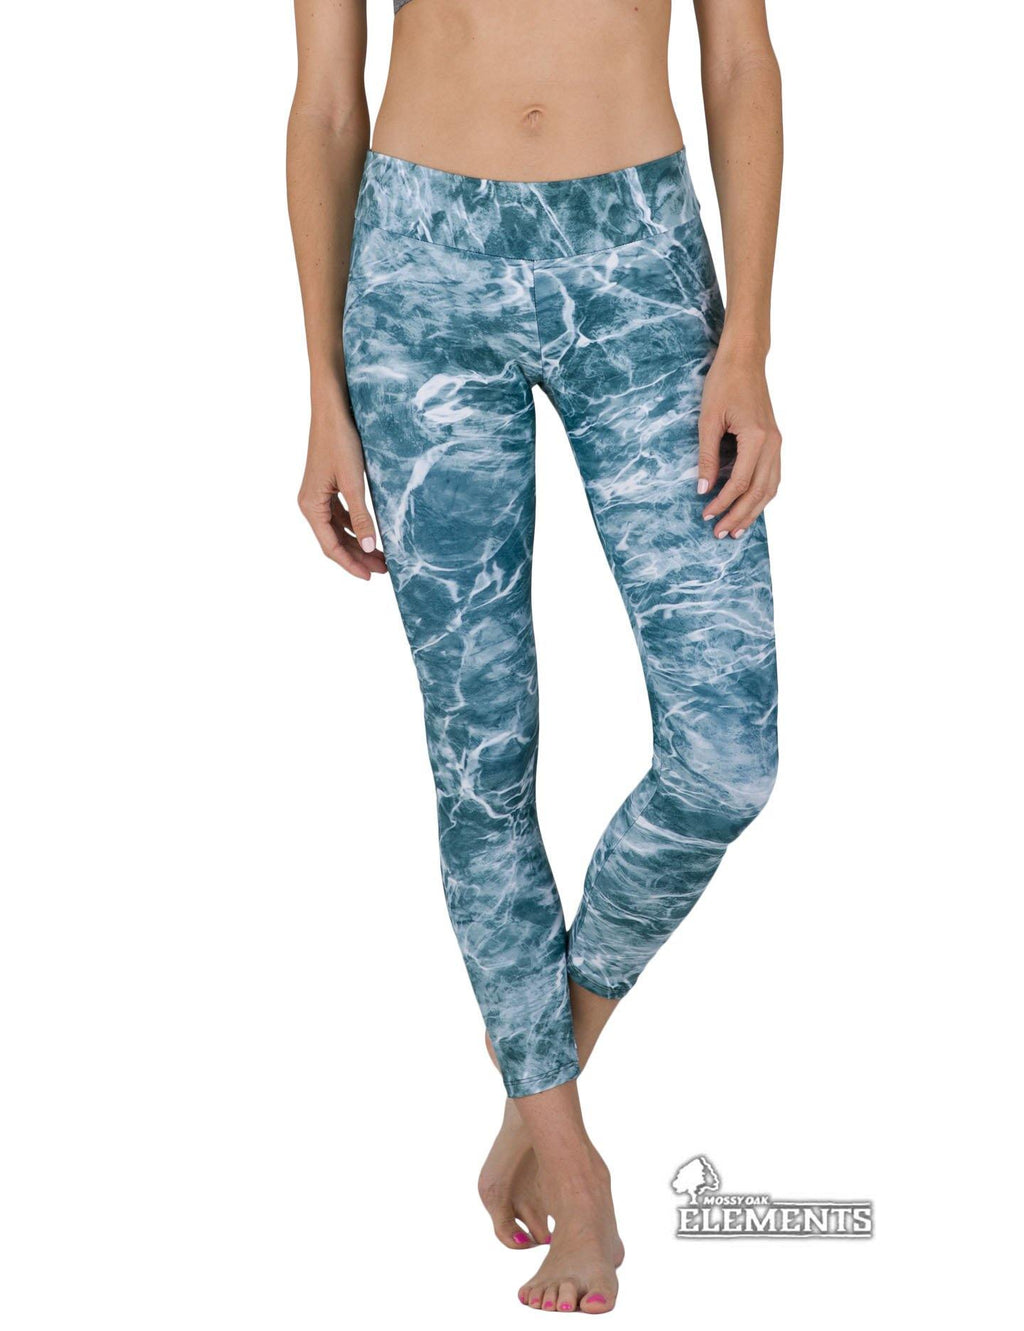 Apsara Leggings Low Waist Cropped, Mossy Oak Elements Spindrift